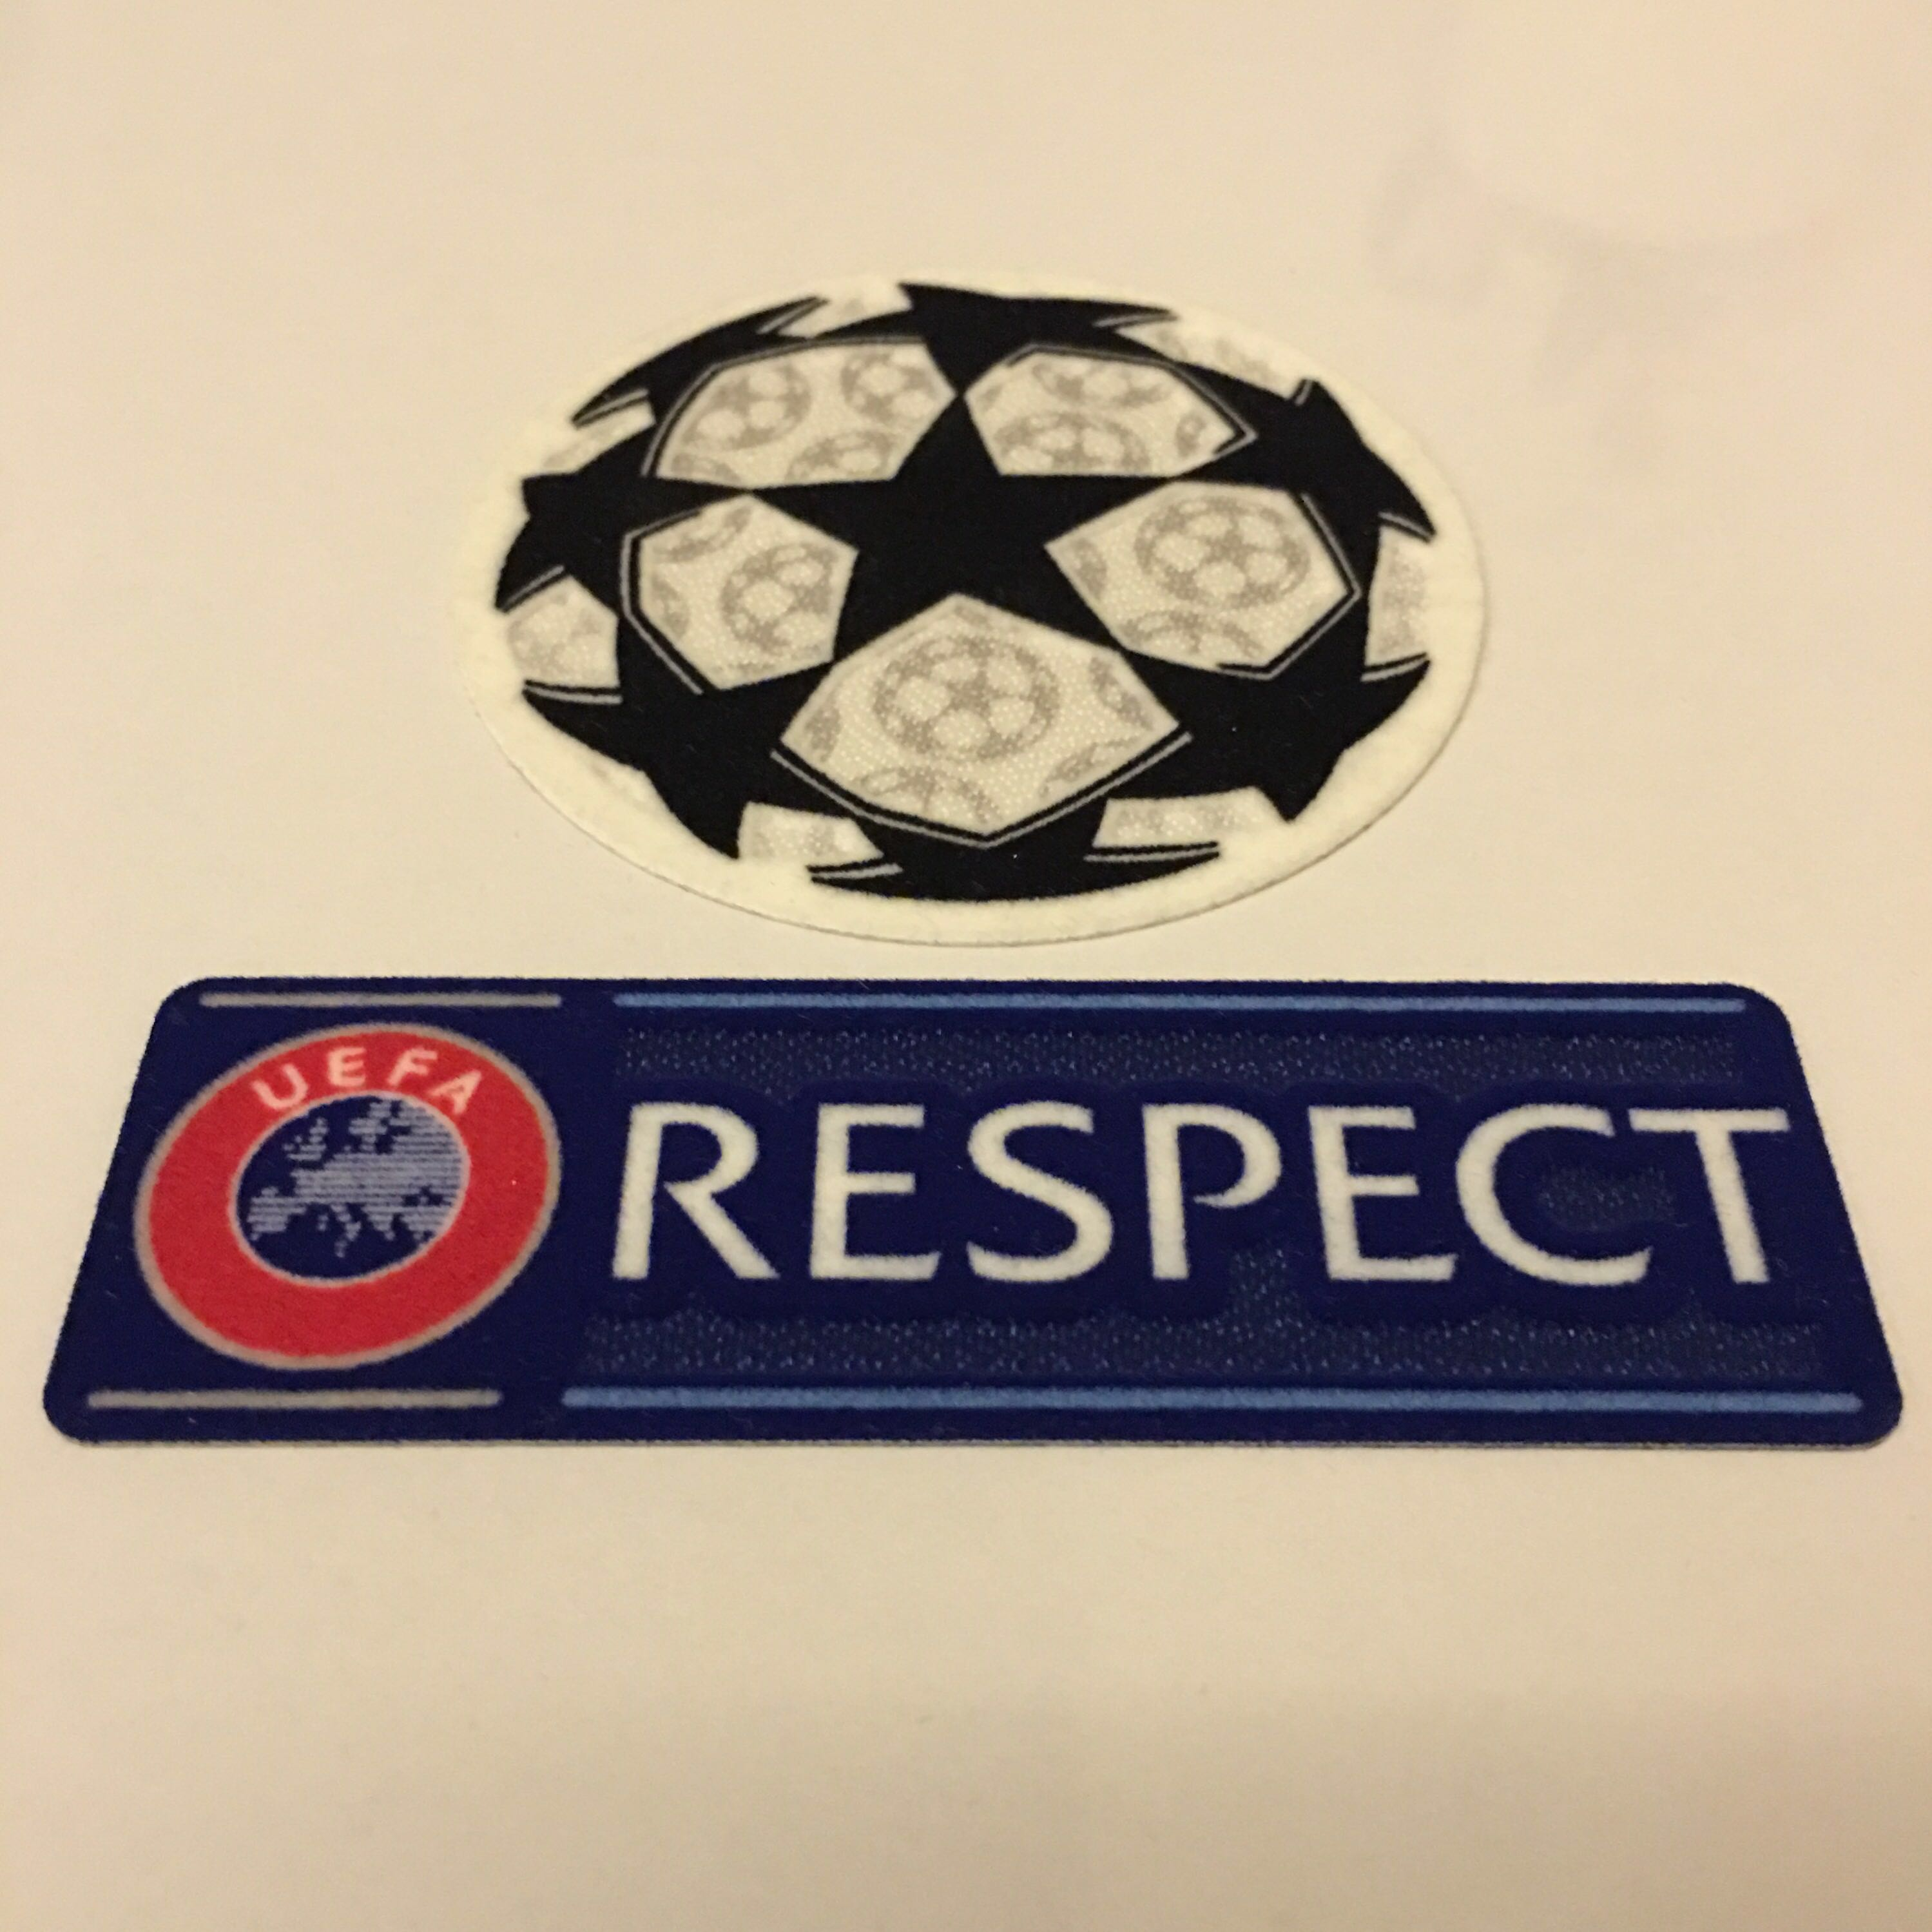 2744b94e9 Official UEFA Champions League Starball and Respect 2012-19 Senscilia Patch